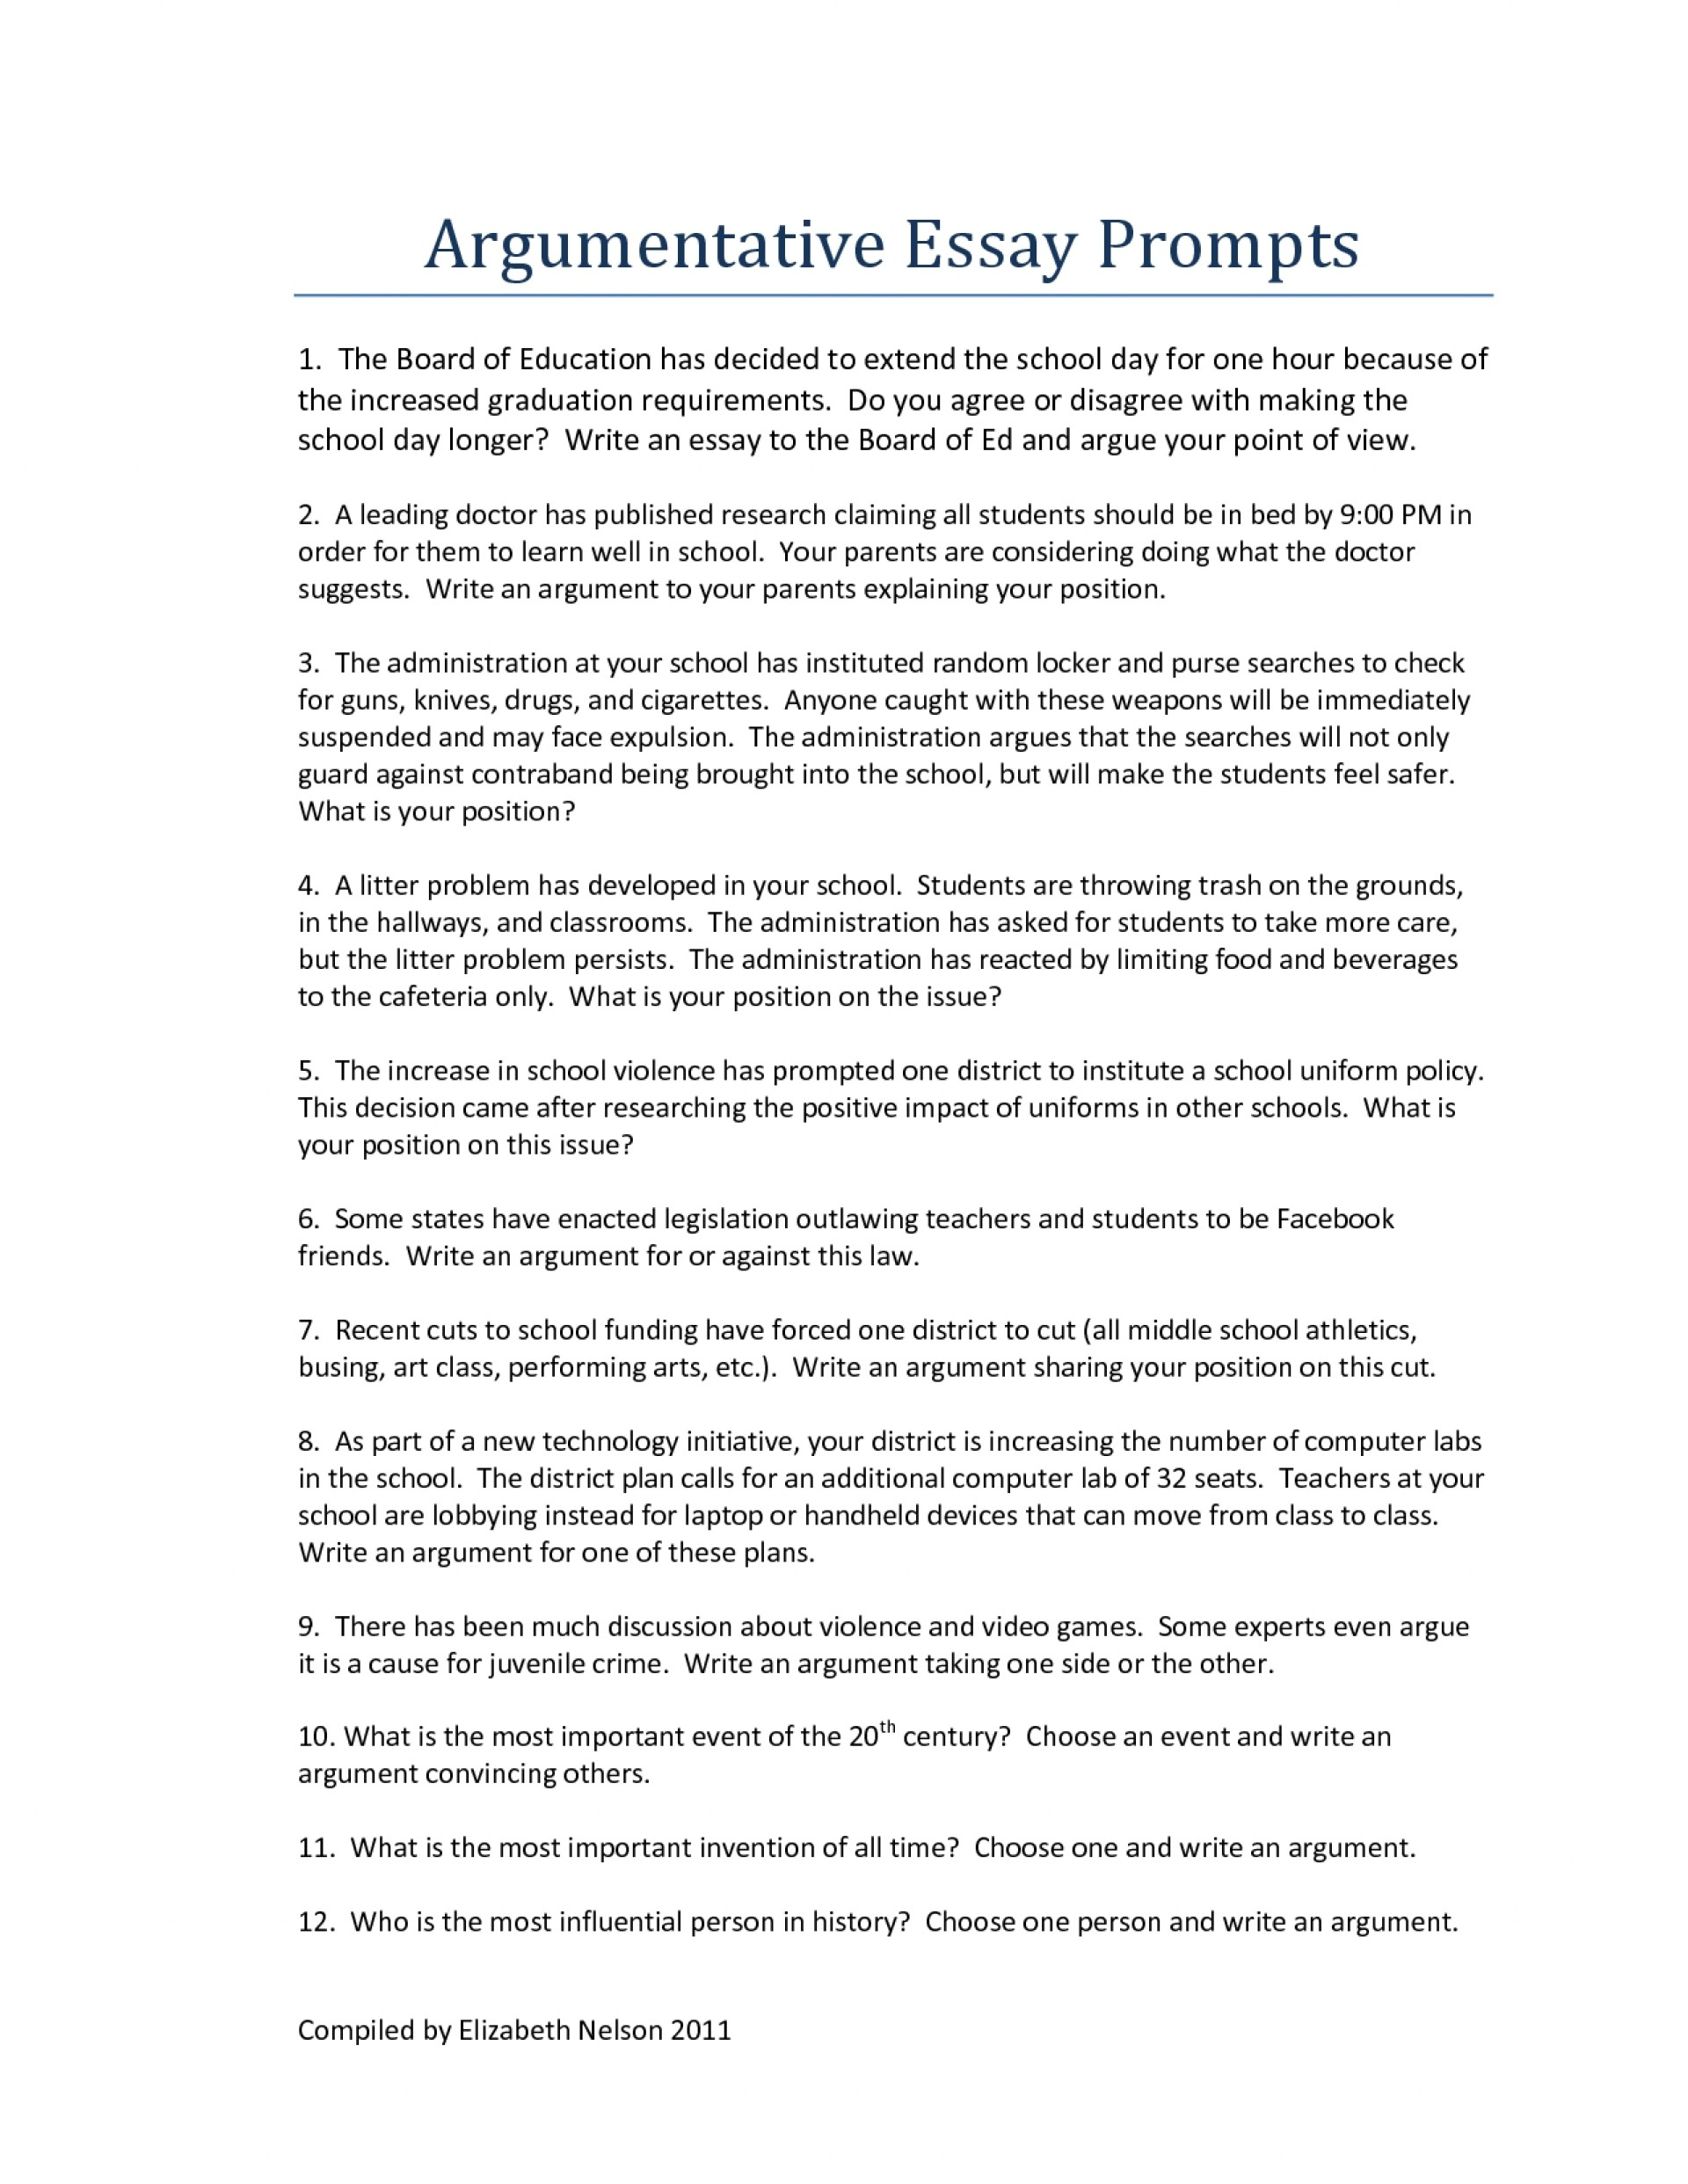 012 Good Persuasive Essay Topics Example Argumentative For Middle School Writings And Essays High Argument Speech About Uniform Education Uniforms Rules Amazing College 1920